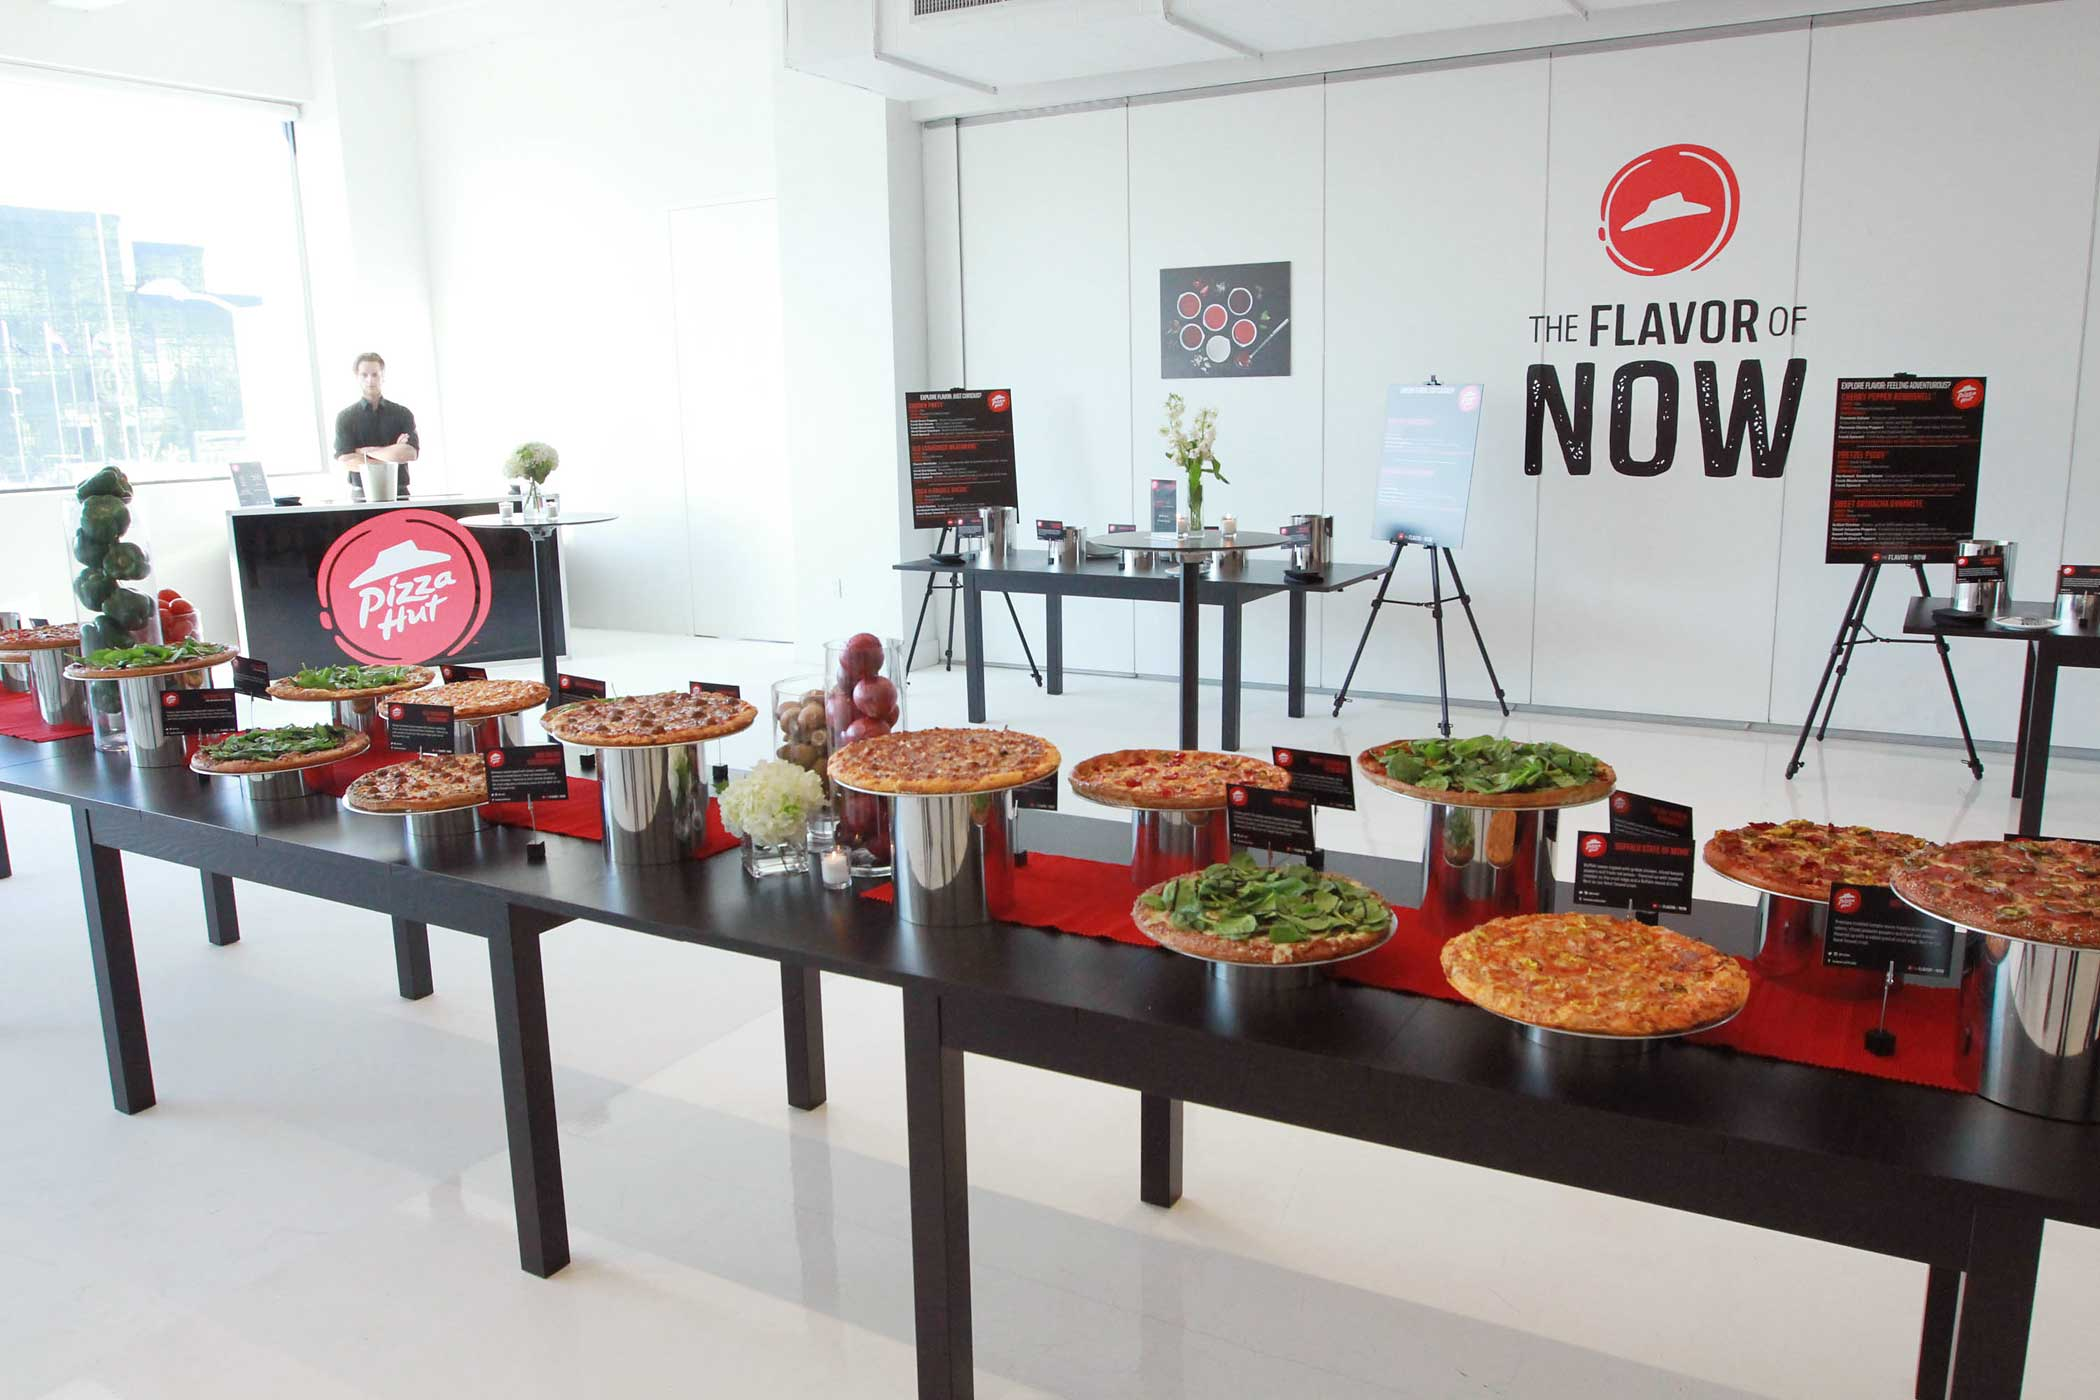 Pizza Hut unveils its new menu in New York on on November 10, 2014.